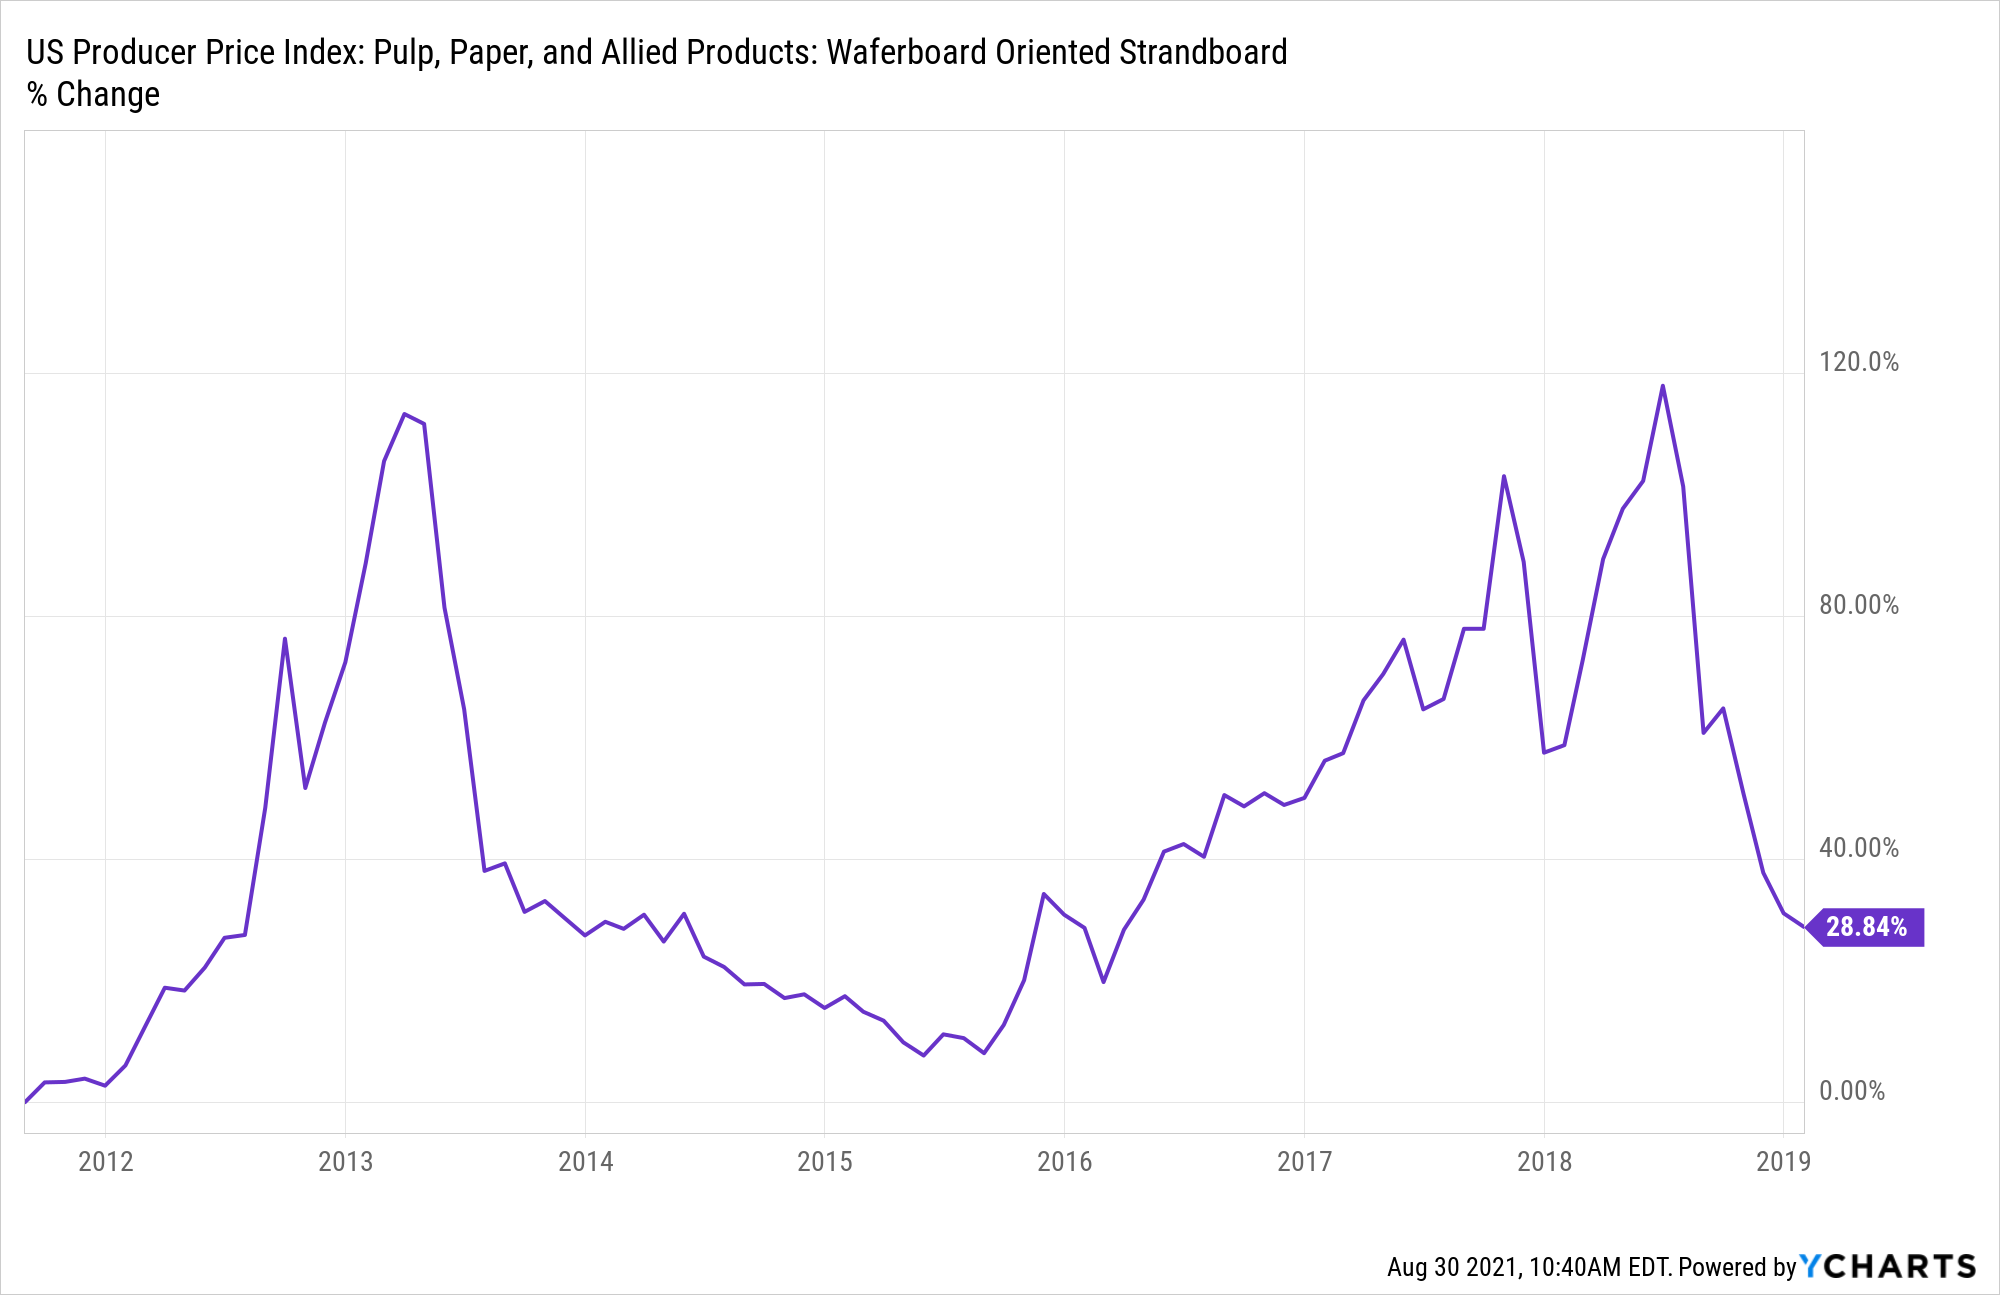 US Producer Price Index: Pulp, Paper, and Allied Products: Waferboard Oriented Strandboard Chart